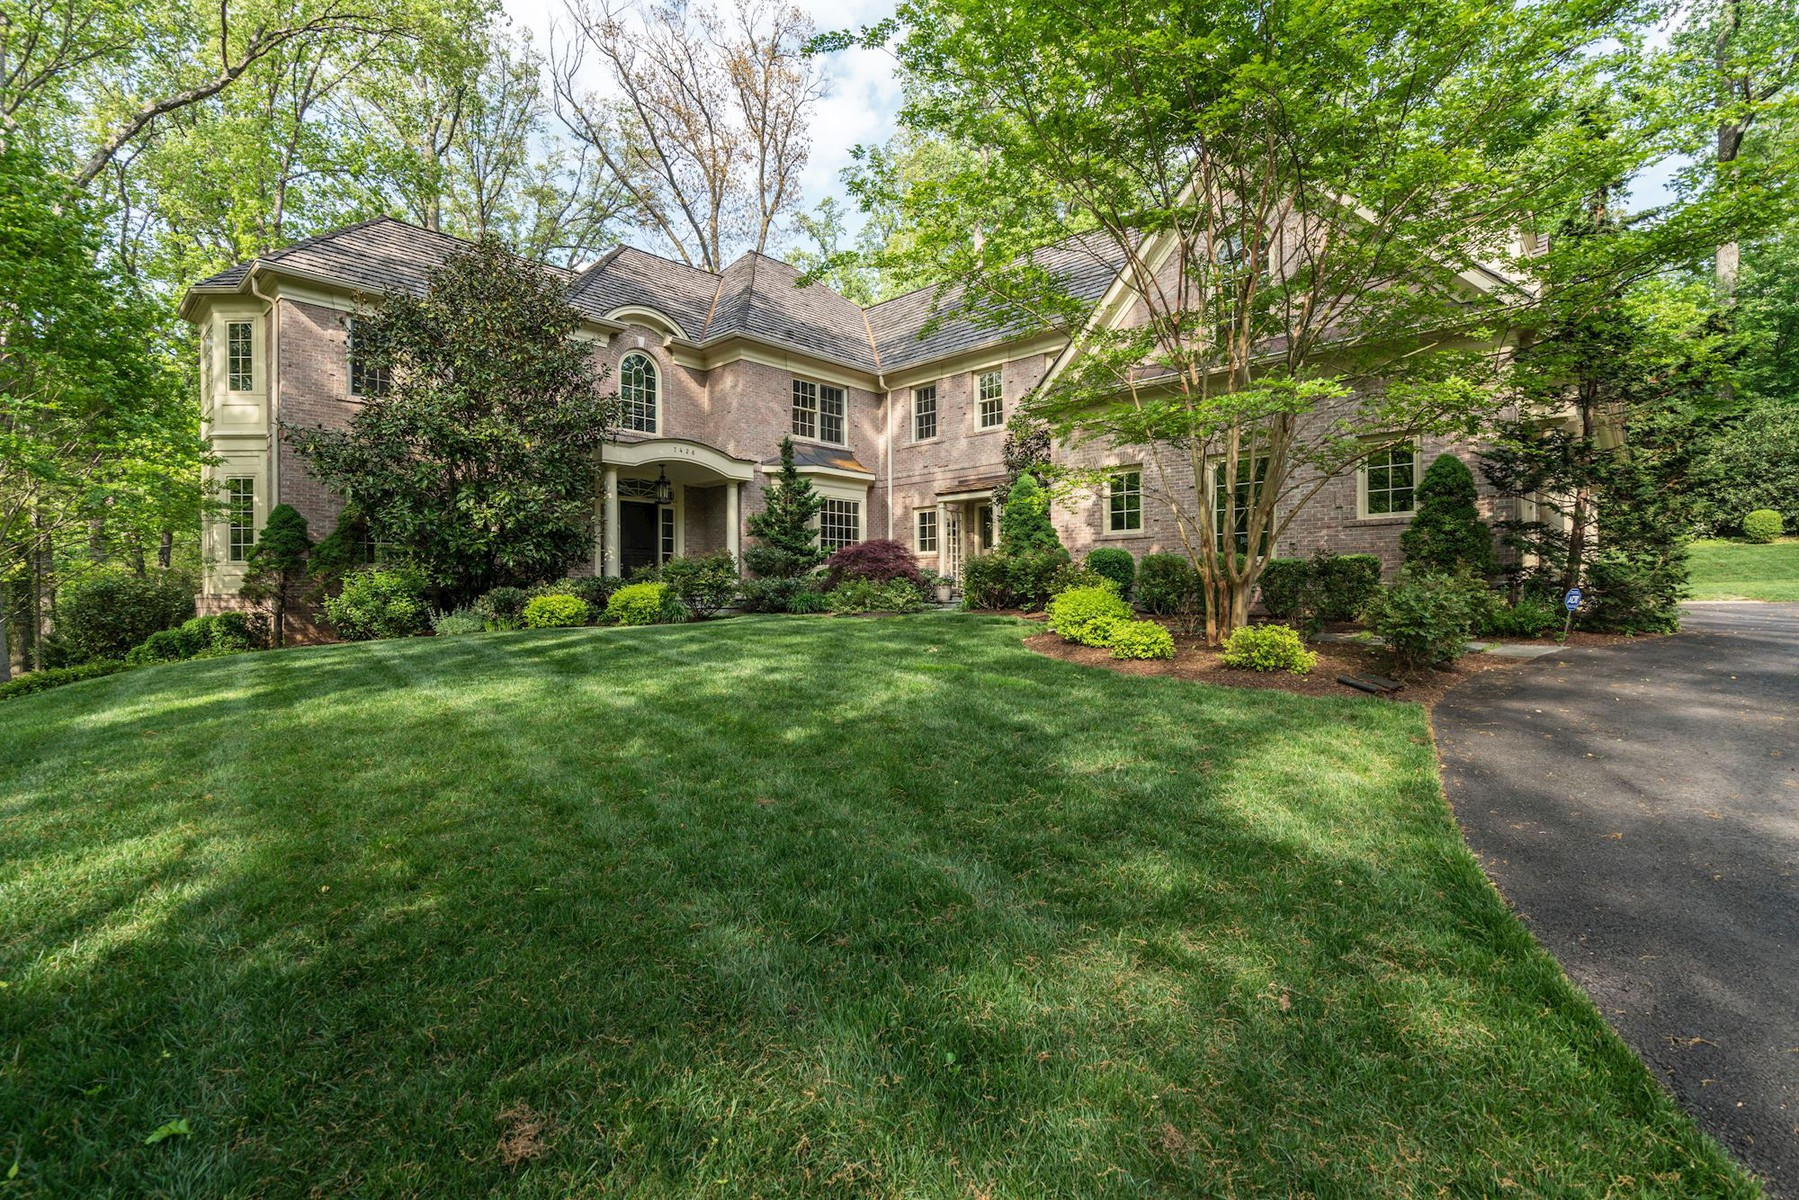 Single Family Home for Sale at 7426 Dulany Drive, Mclean McLean, Virginia, 22101 United States